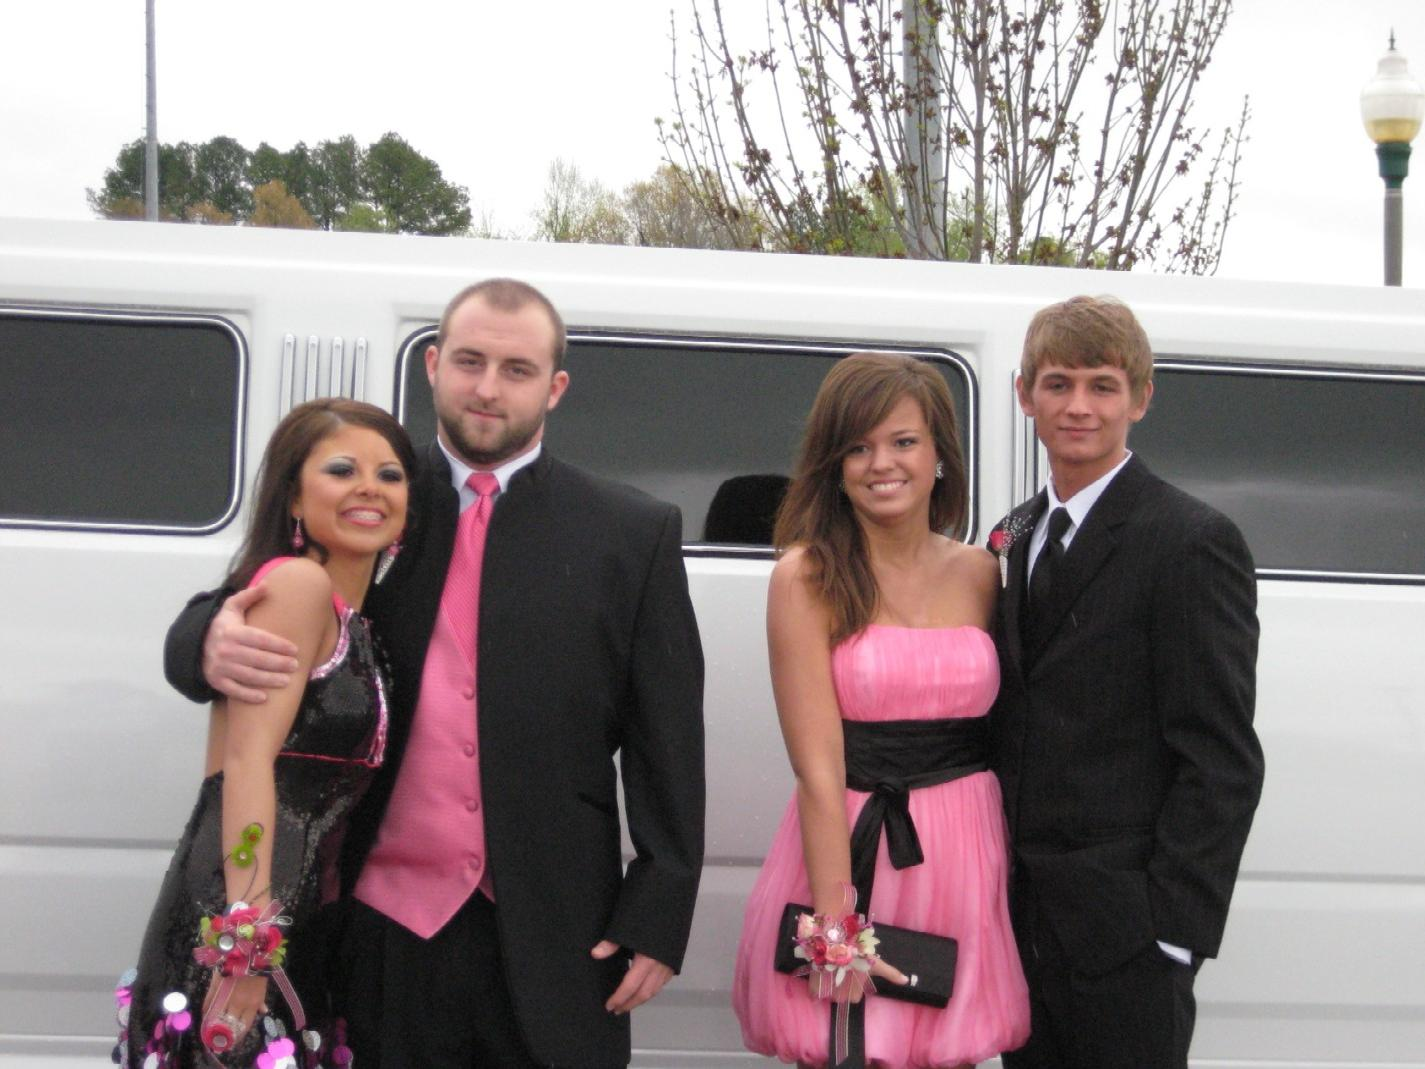 Two Couples Departing For Prom